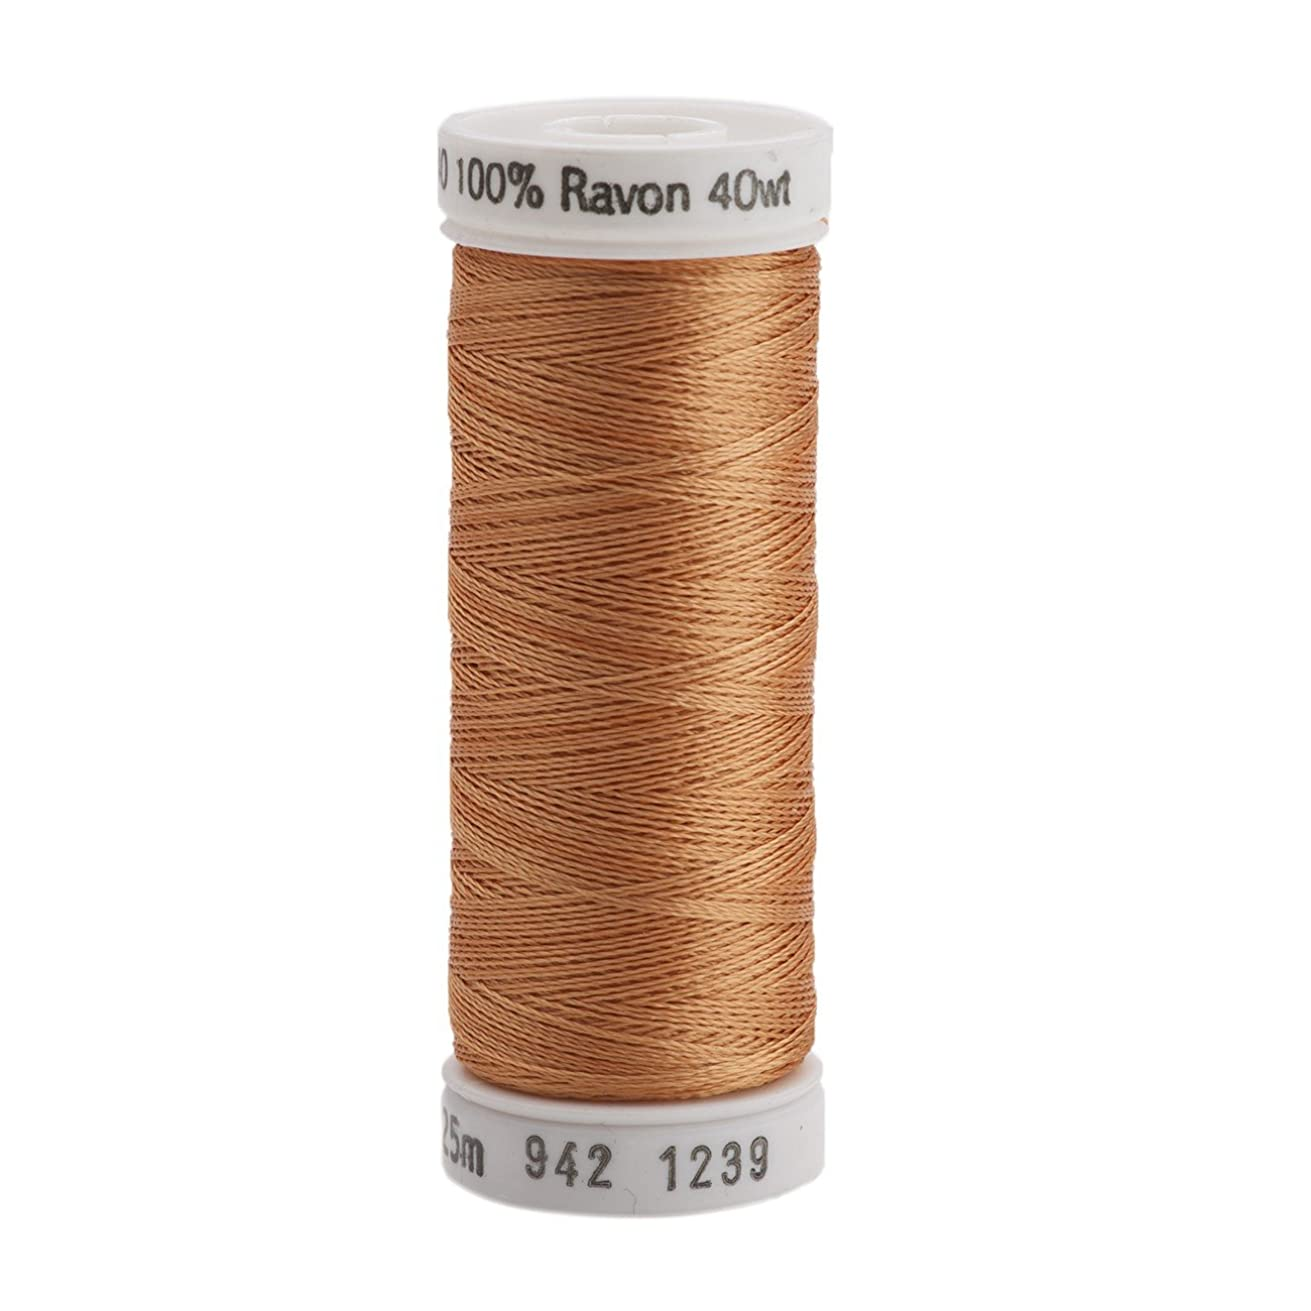 Sulky 942-1239 Rayon Thread for Sewing, 250-Yard, Apricot